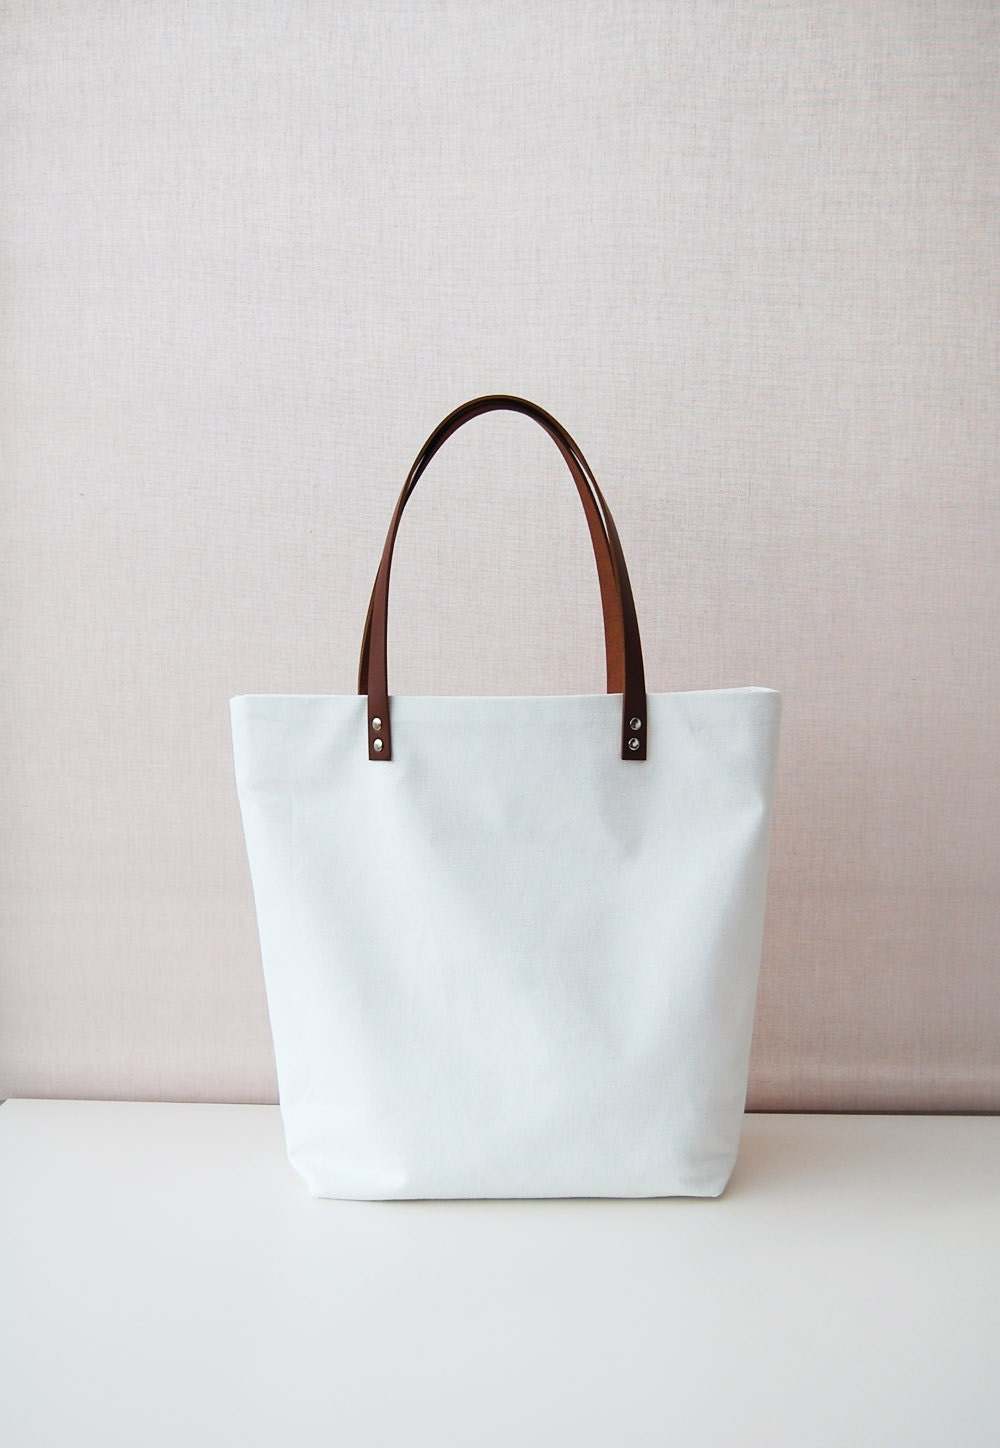 white canvas tote bag with leather handles by forestbags